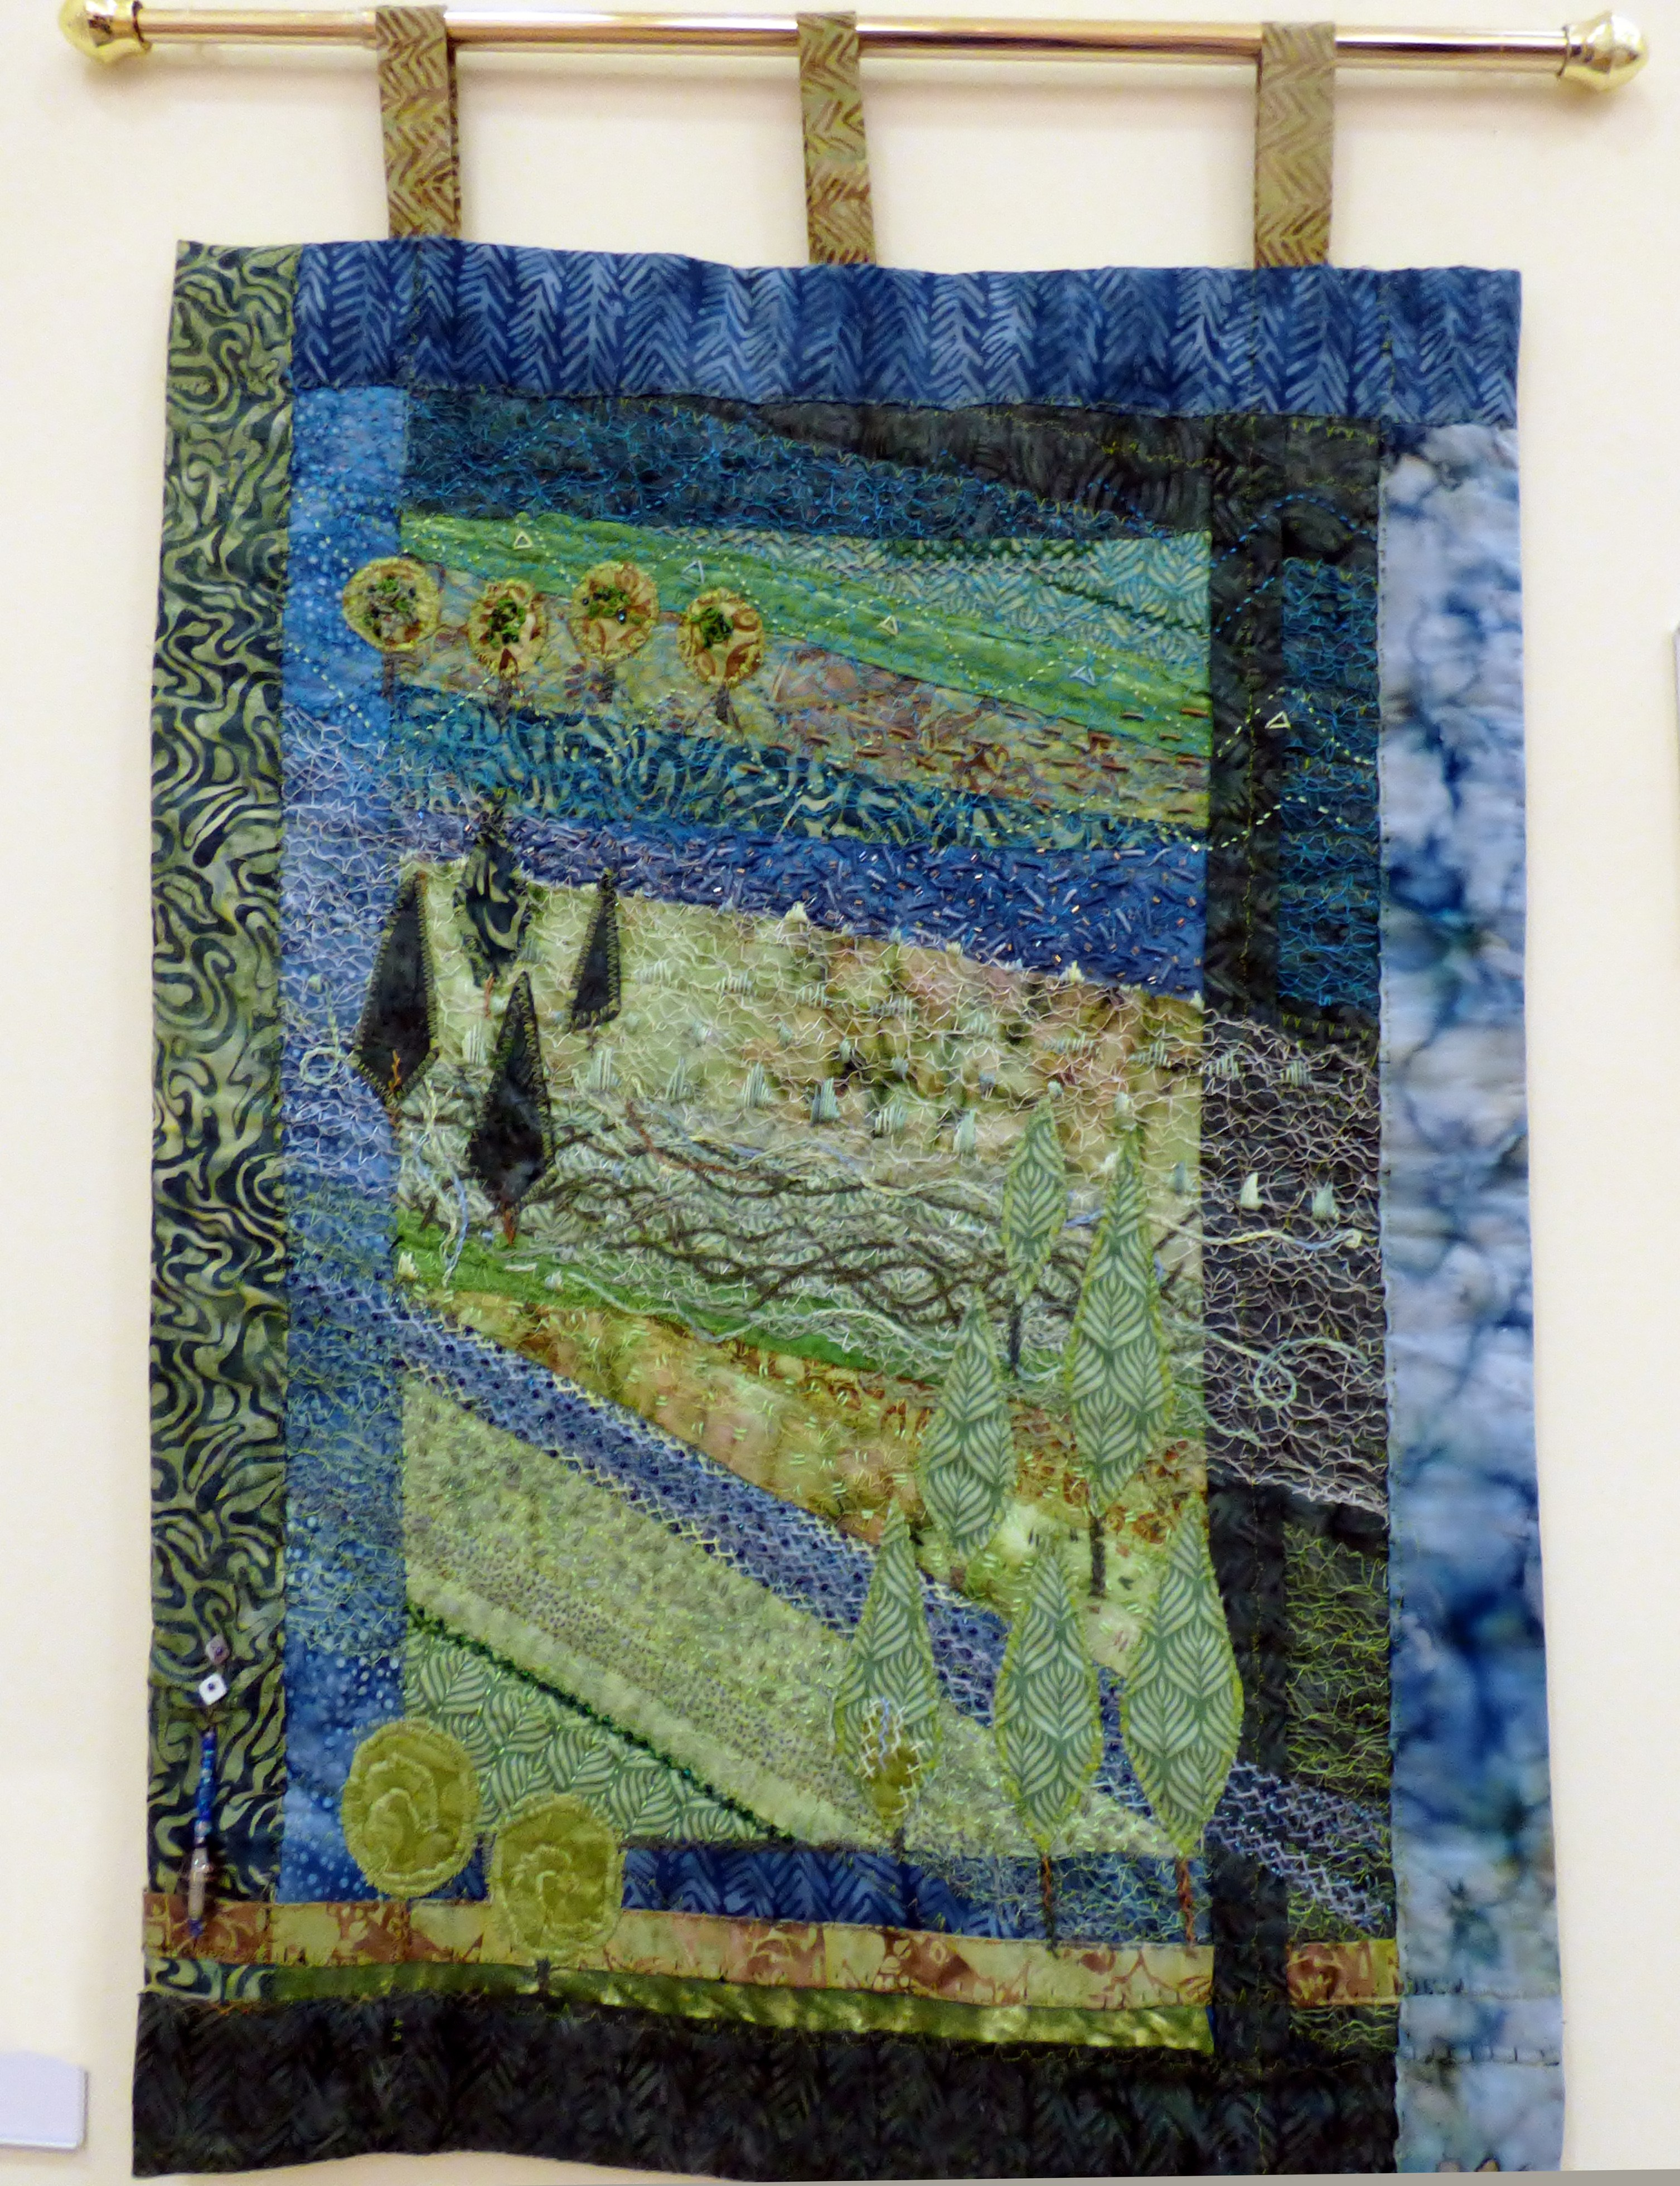 LOOKING IN THE GARDENS by Catherine Leighton, Macclesfield & District EG, strip quilting with applique trees, hand and machine embroidery & beads